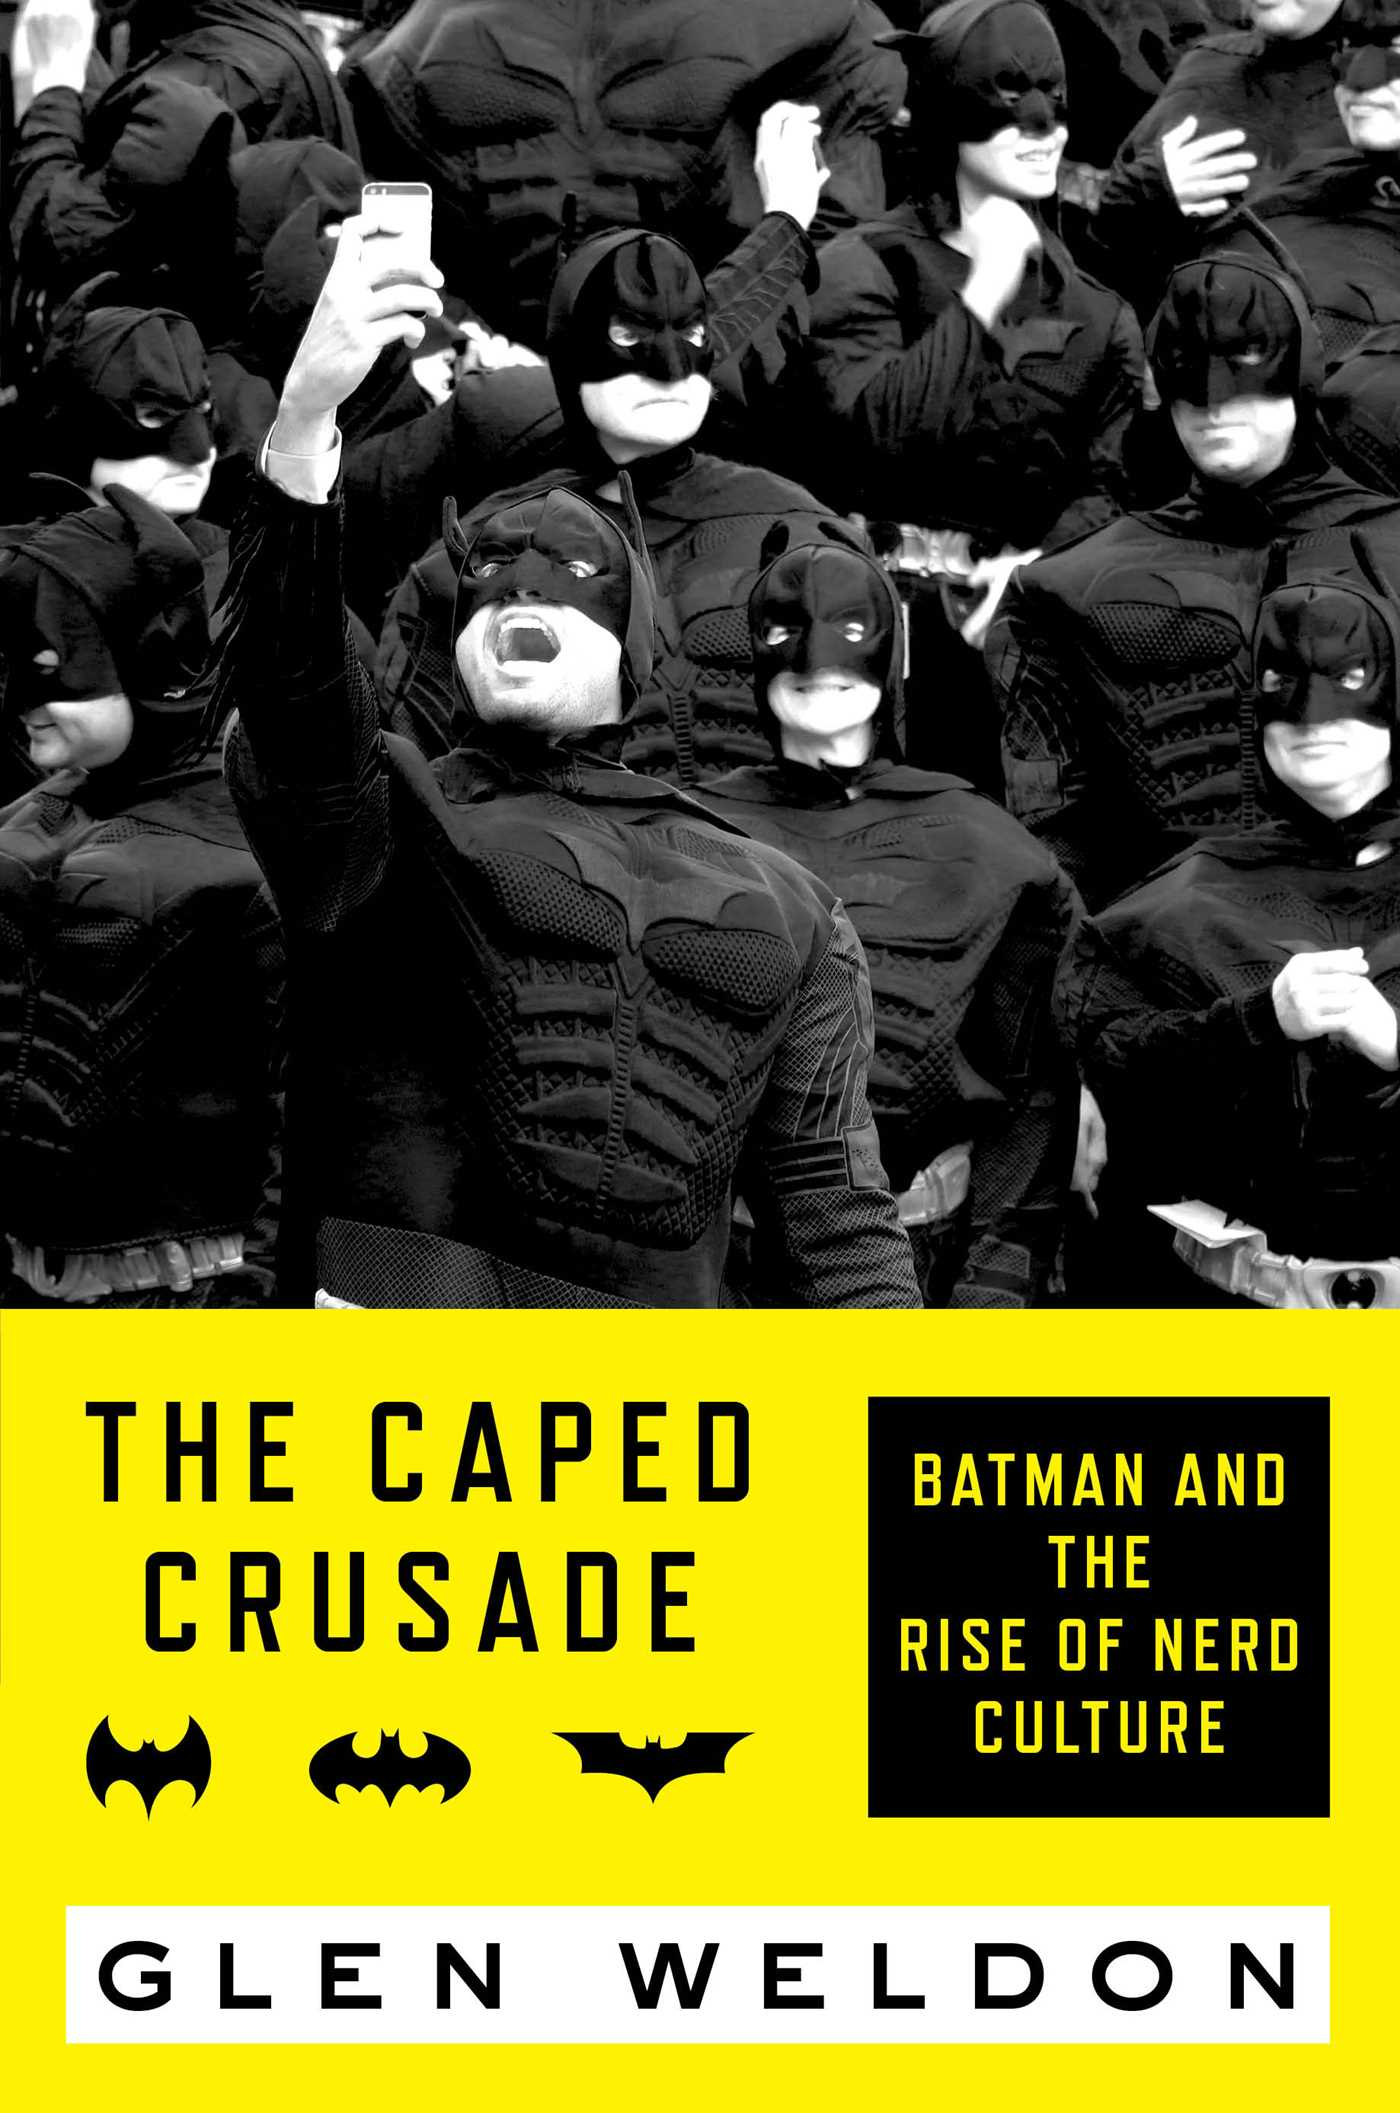 The Caped Crusade Takes an In Depth Look At The Batman and What He Says About Us